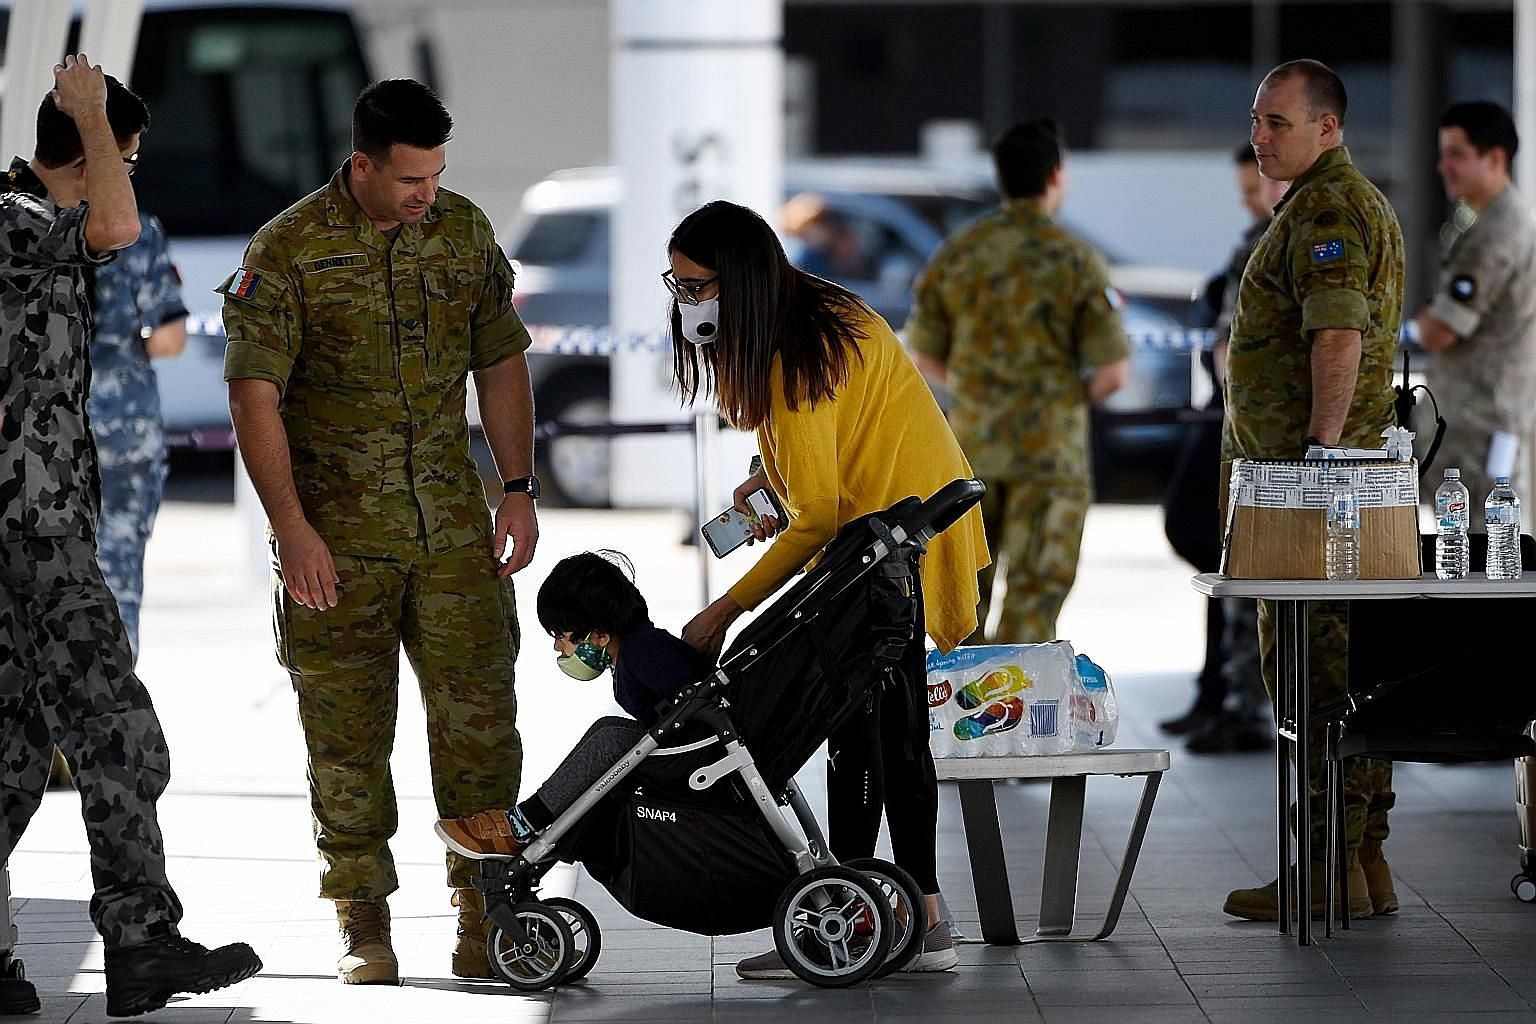 Australian residents being helped by military staff after arriving at the Sydney airport during the pandemic. The Morrison government has called for an international inquiry into the origins of the coronavirus.